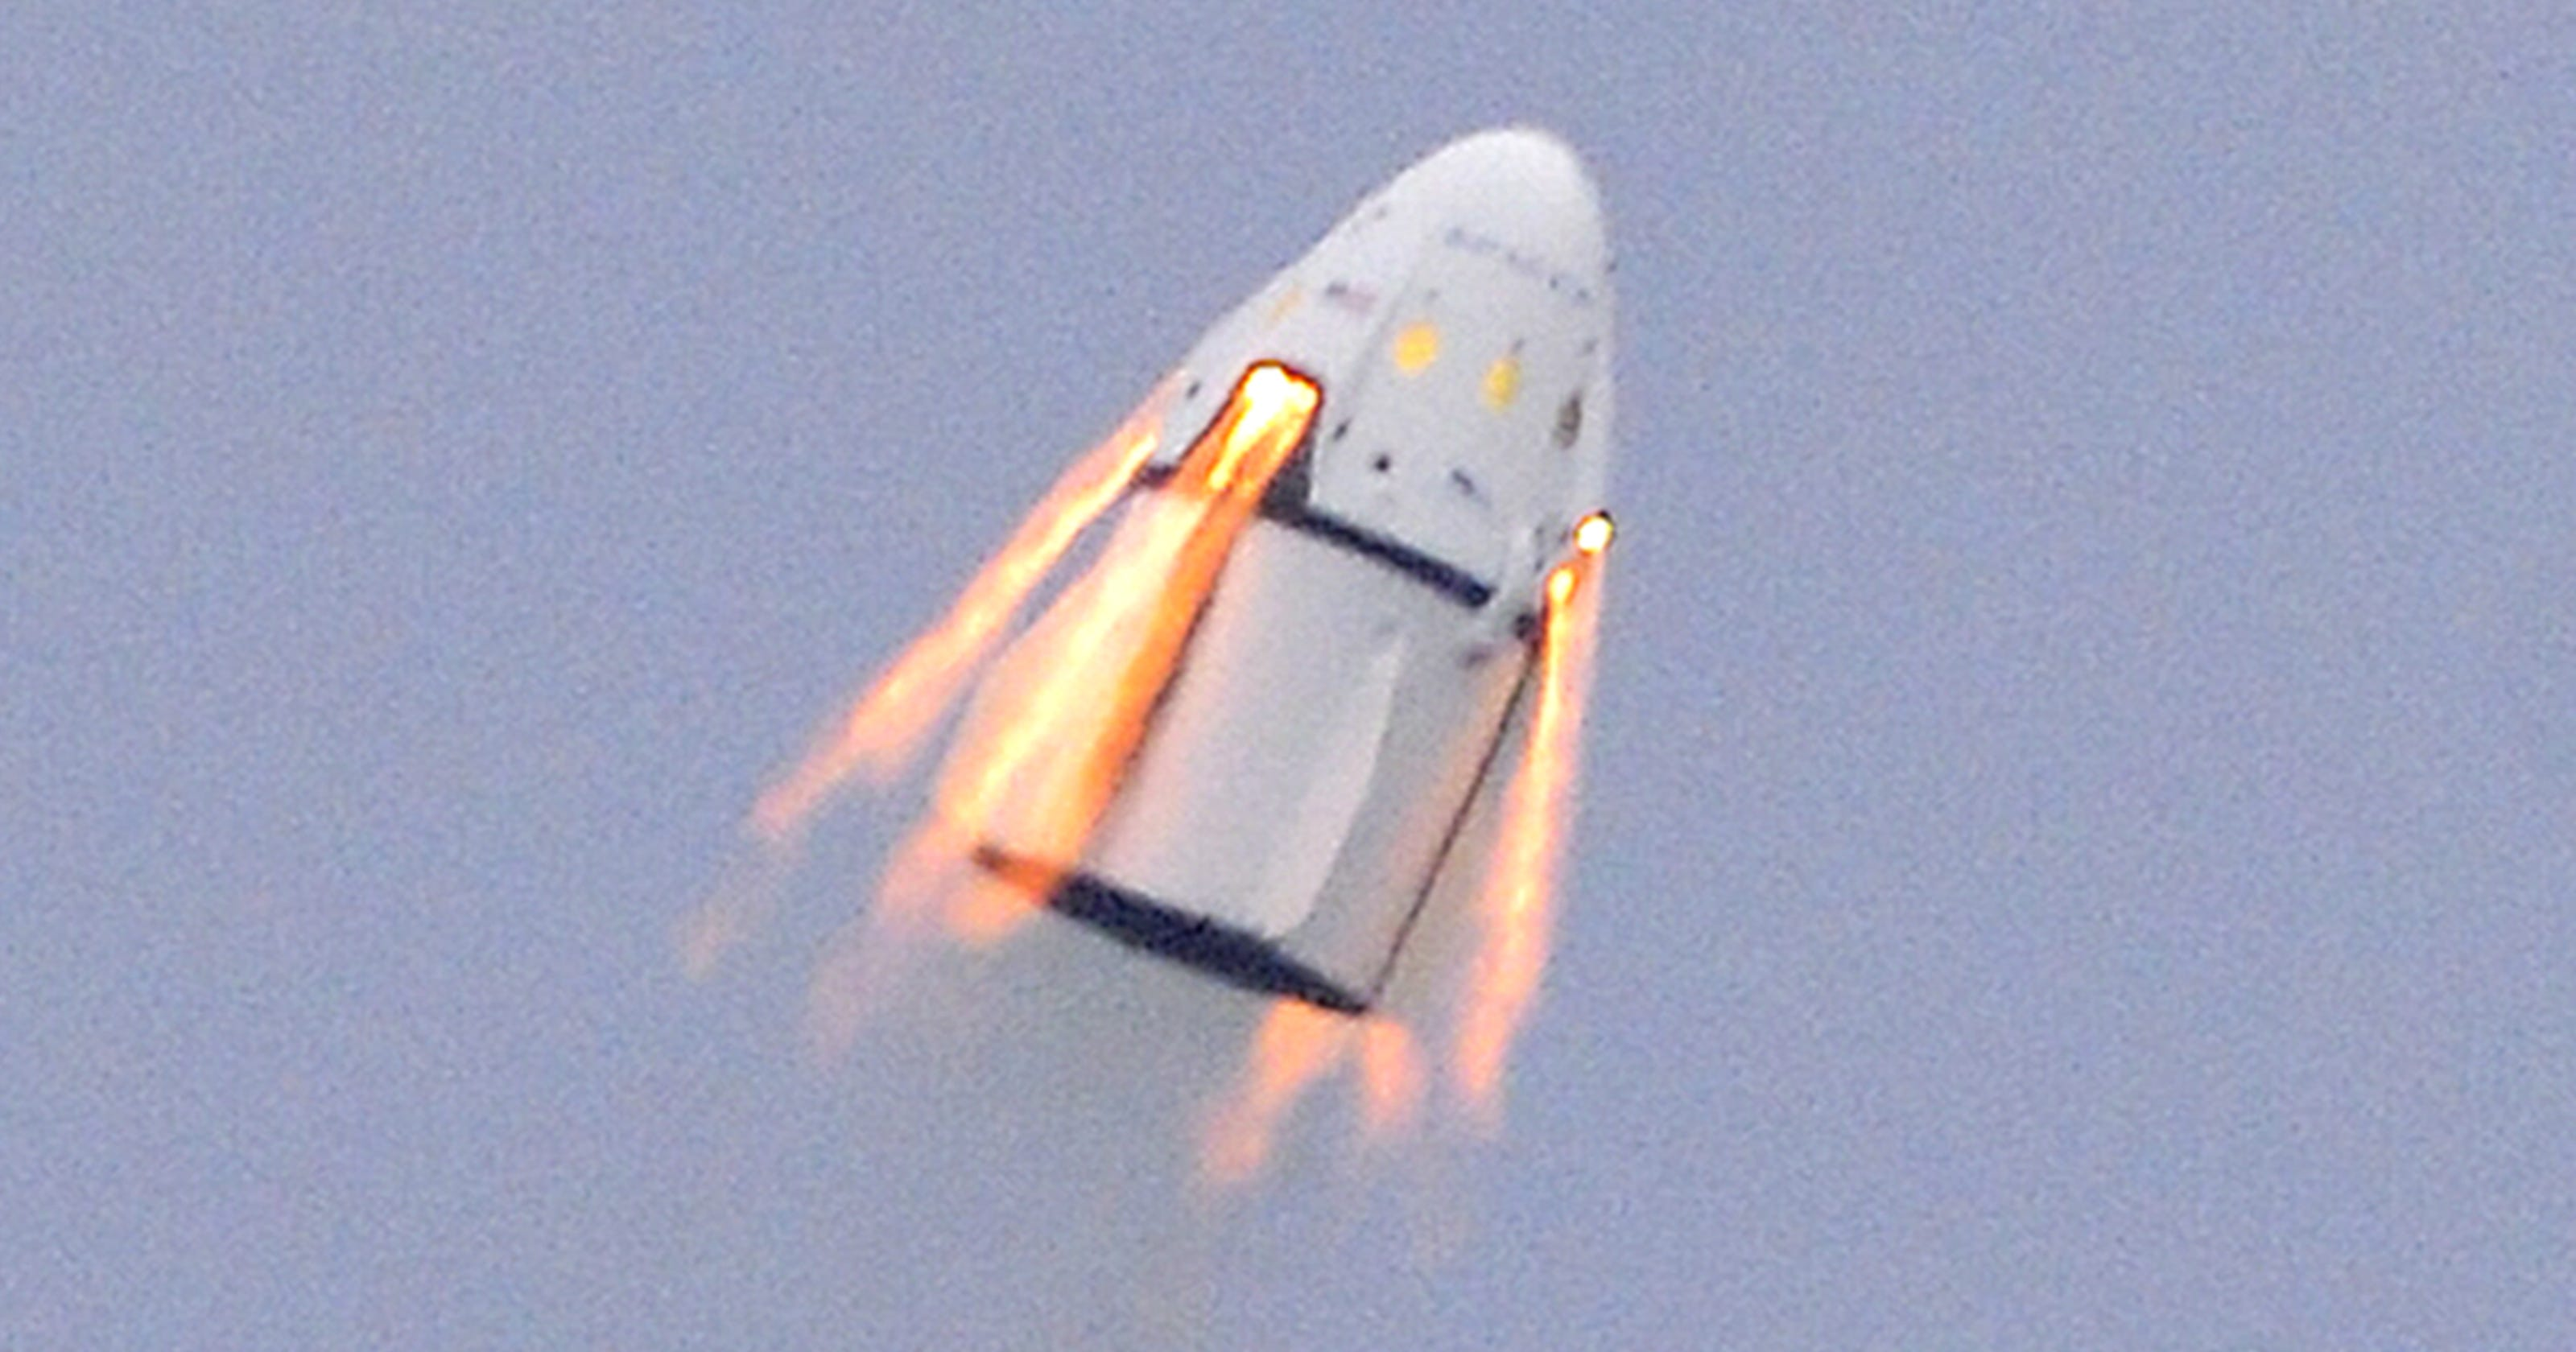 spacex dragon explosion - HD3200×1680